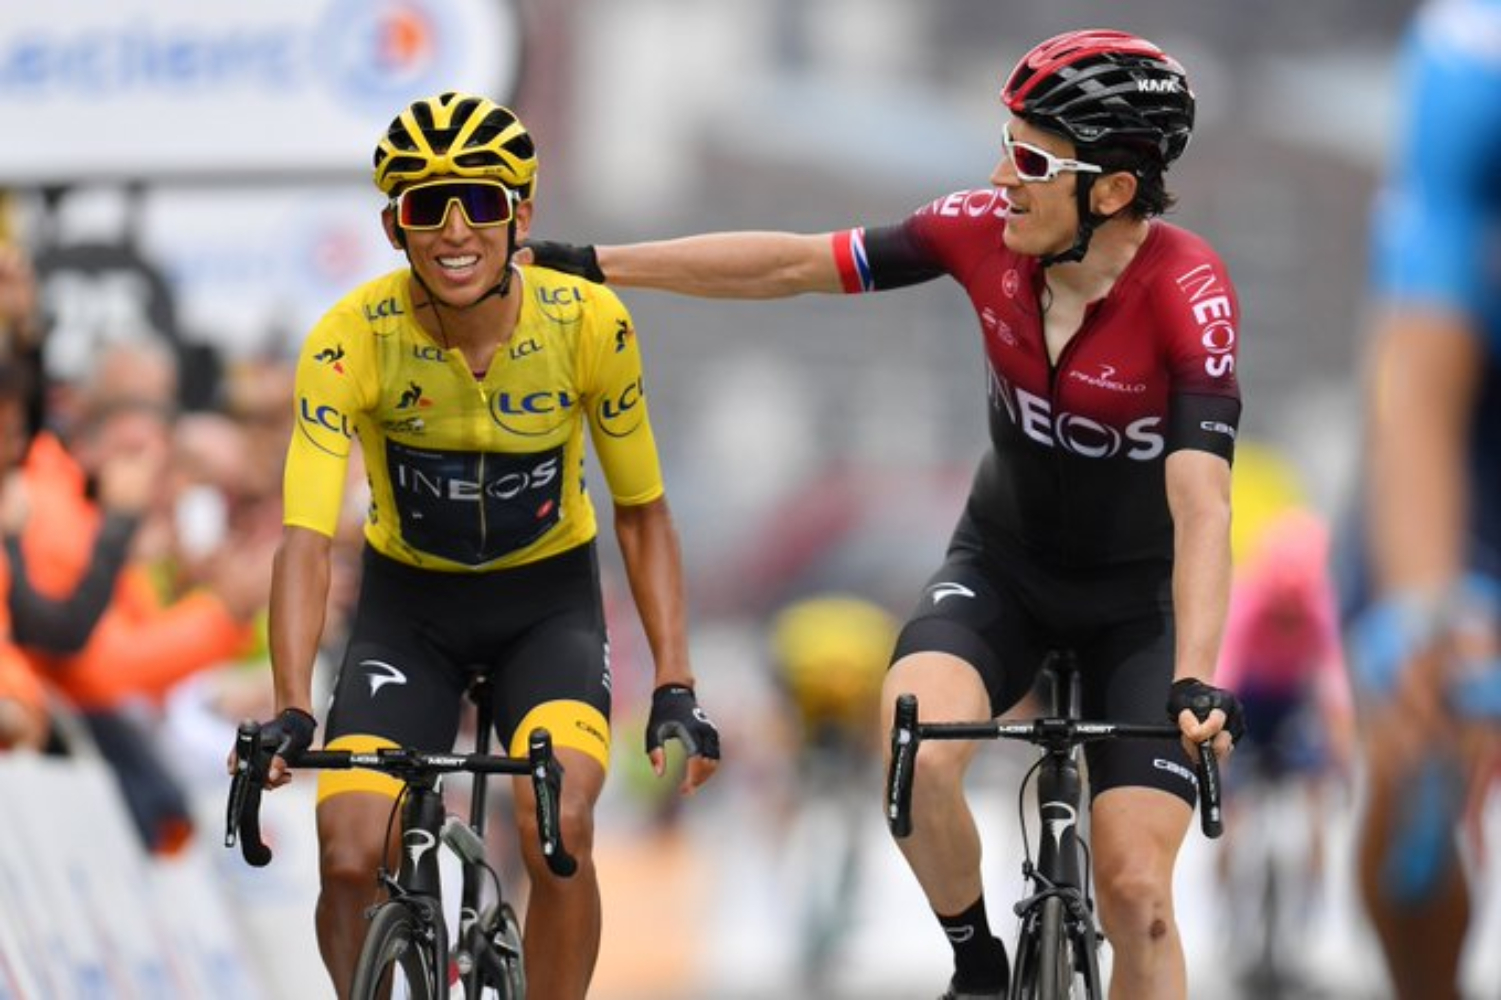 Egan Bernal, Geraint Thomas, Tour de Francia 2019